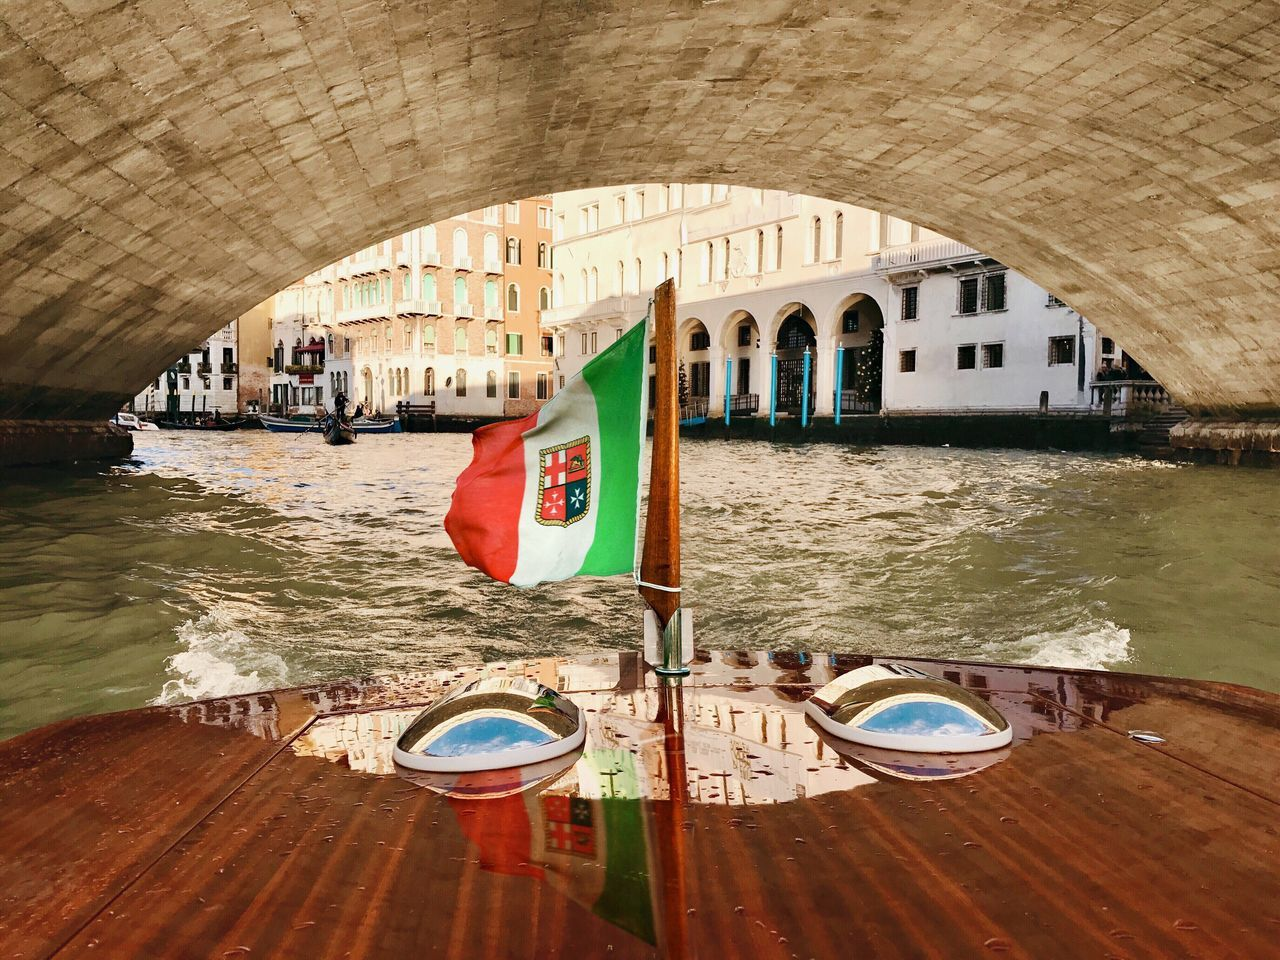 Italian Flag On Water Taxi Under Arch Bridge In River